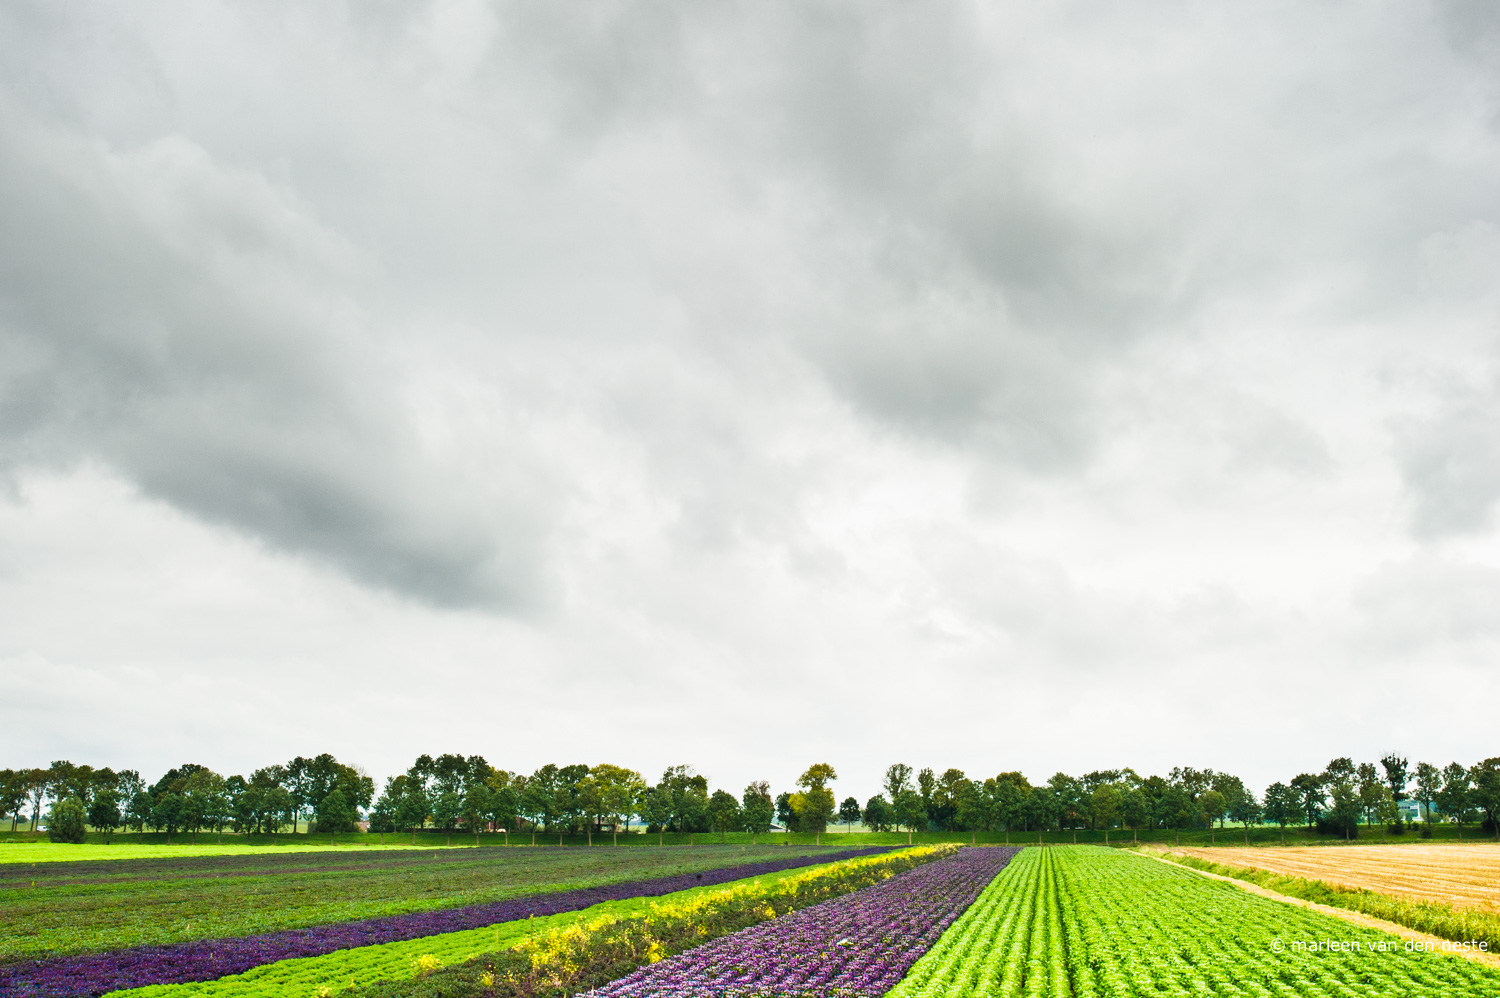 Colorful fields in Heinenoord.